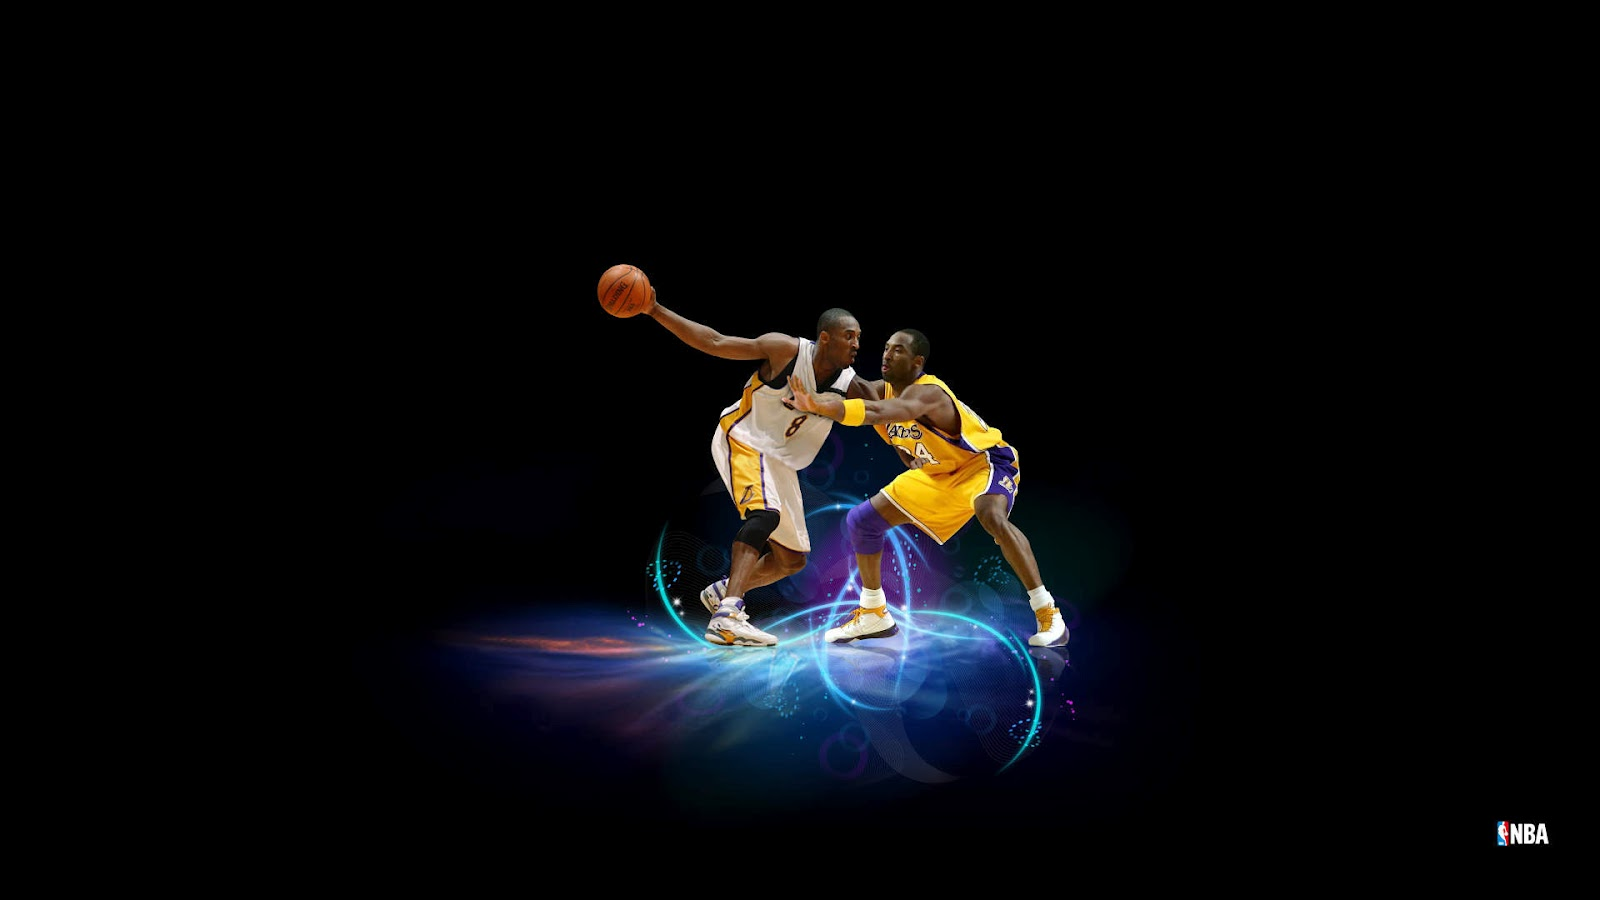 Wallpaper Collection For Your Computer and Mobile Phones Basketball 1600x900